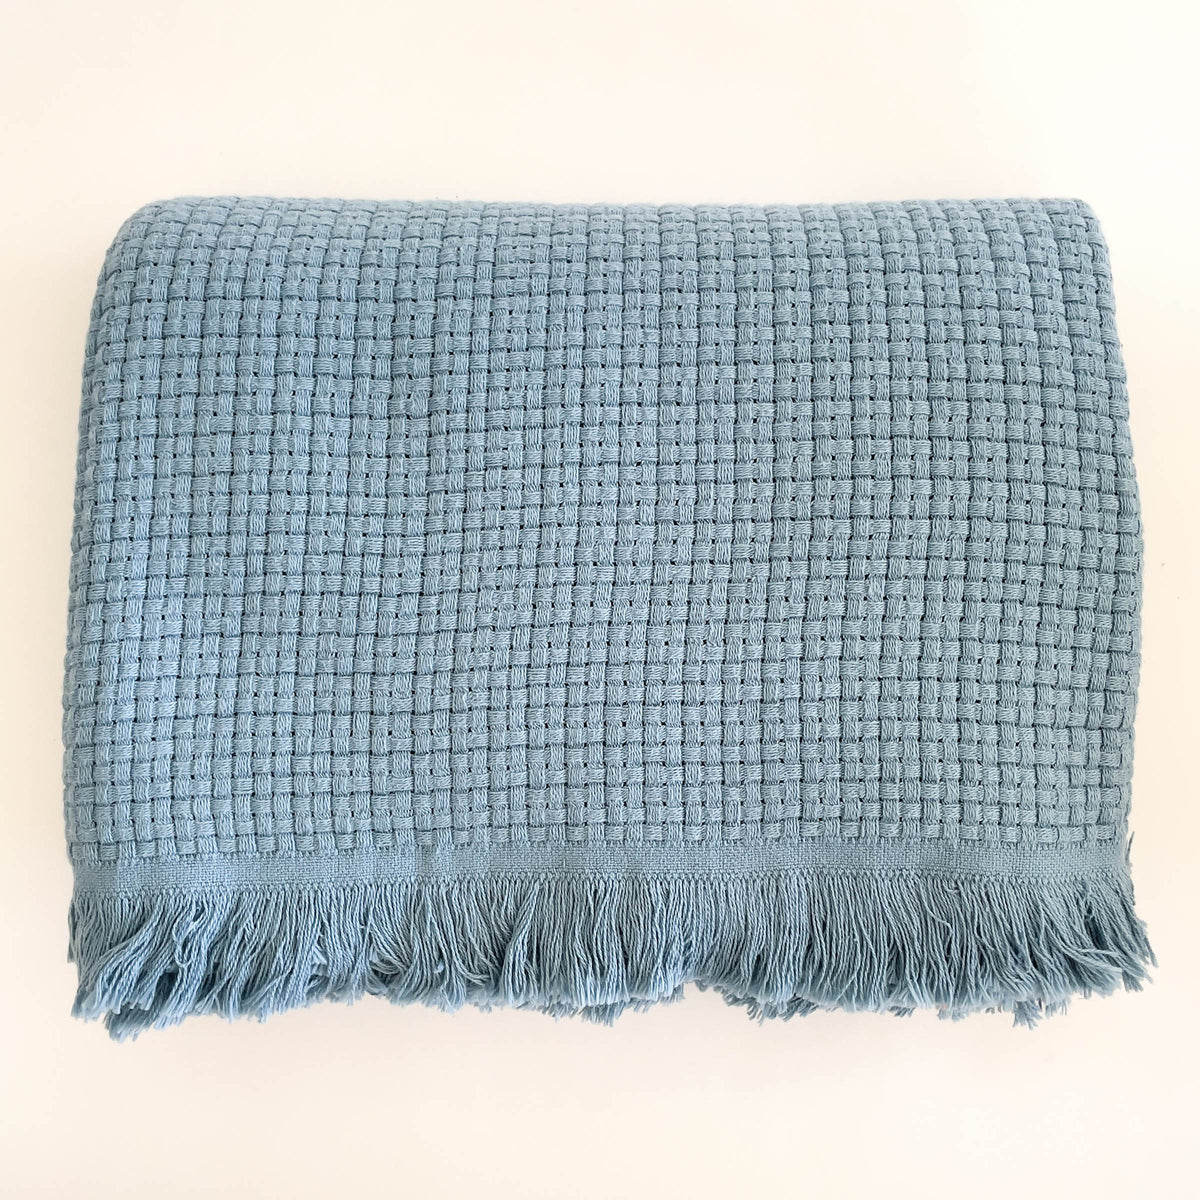 Baran Box Weave Throw Blanket - 100% Turkish Cotton